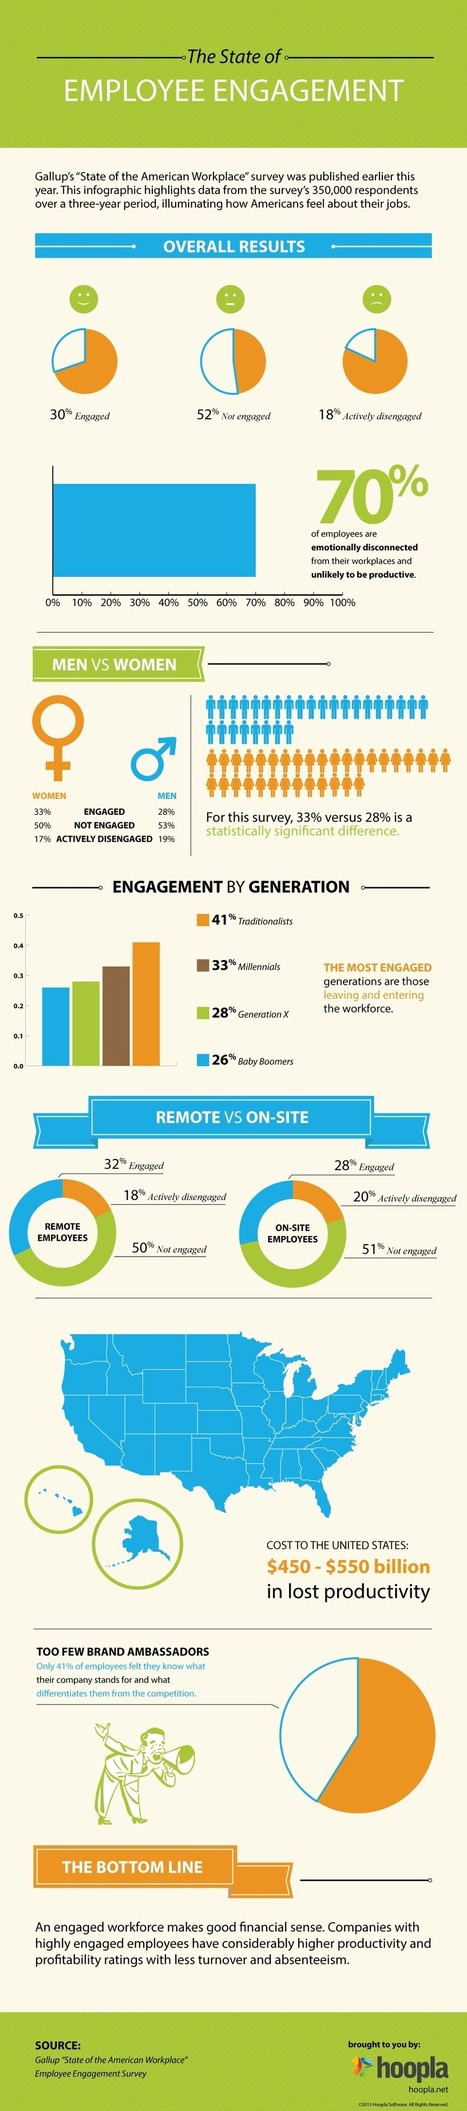 The State of Employee Engagement [INFOGRAPHIC] | Trends in Employee Volunteering & Workplace Giving | Scoop.it